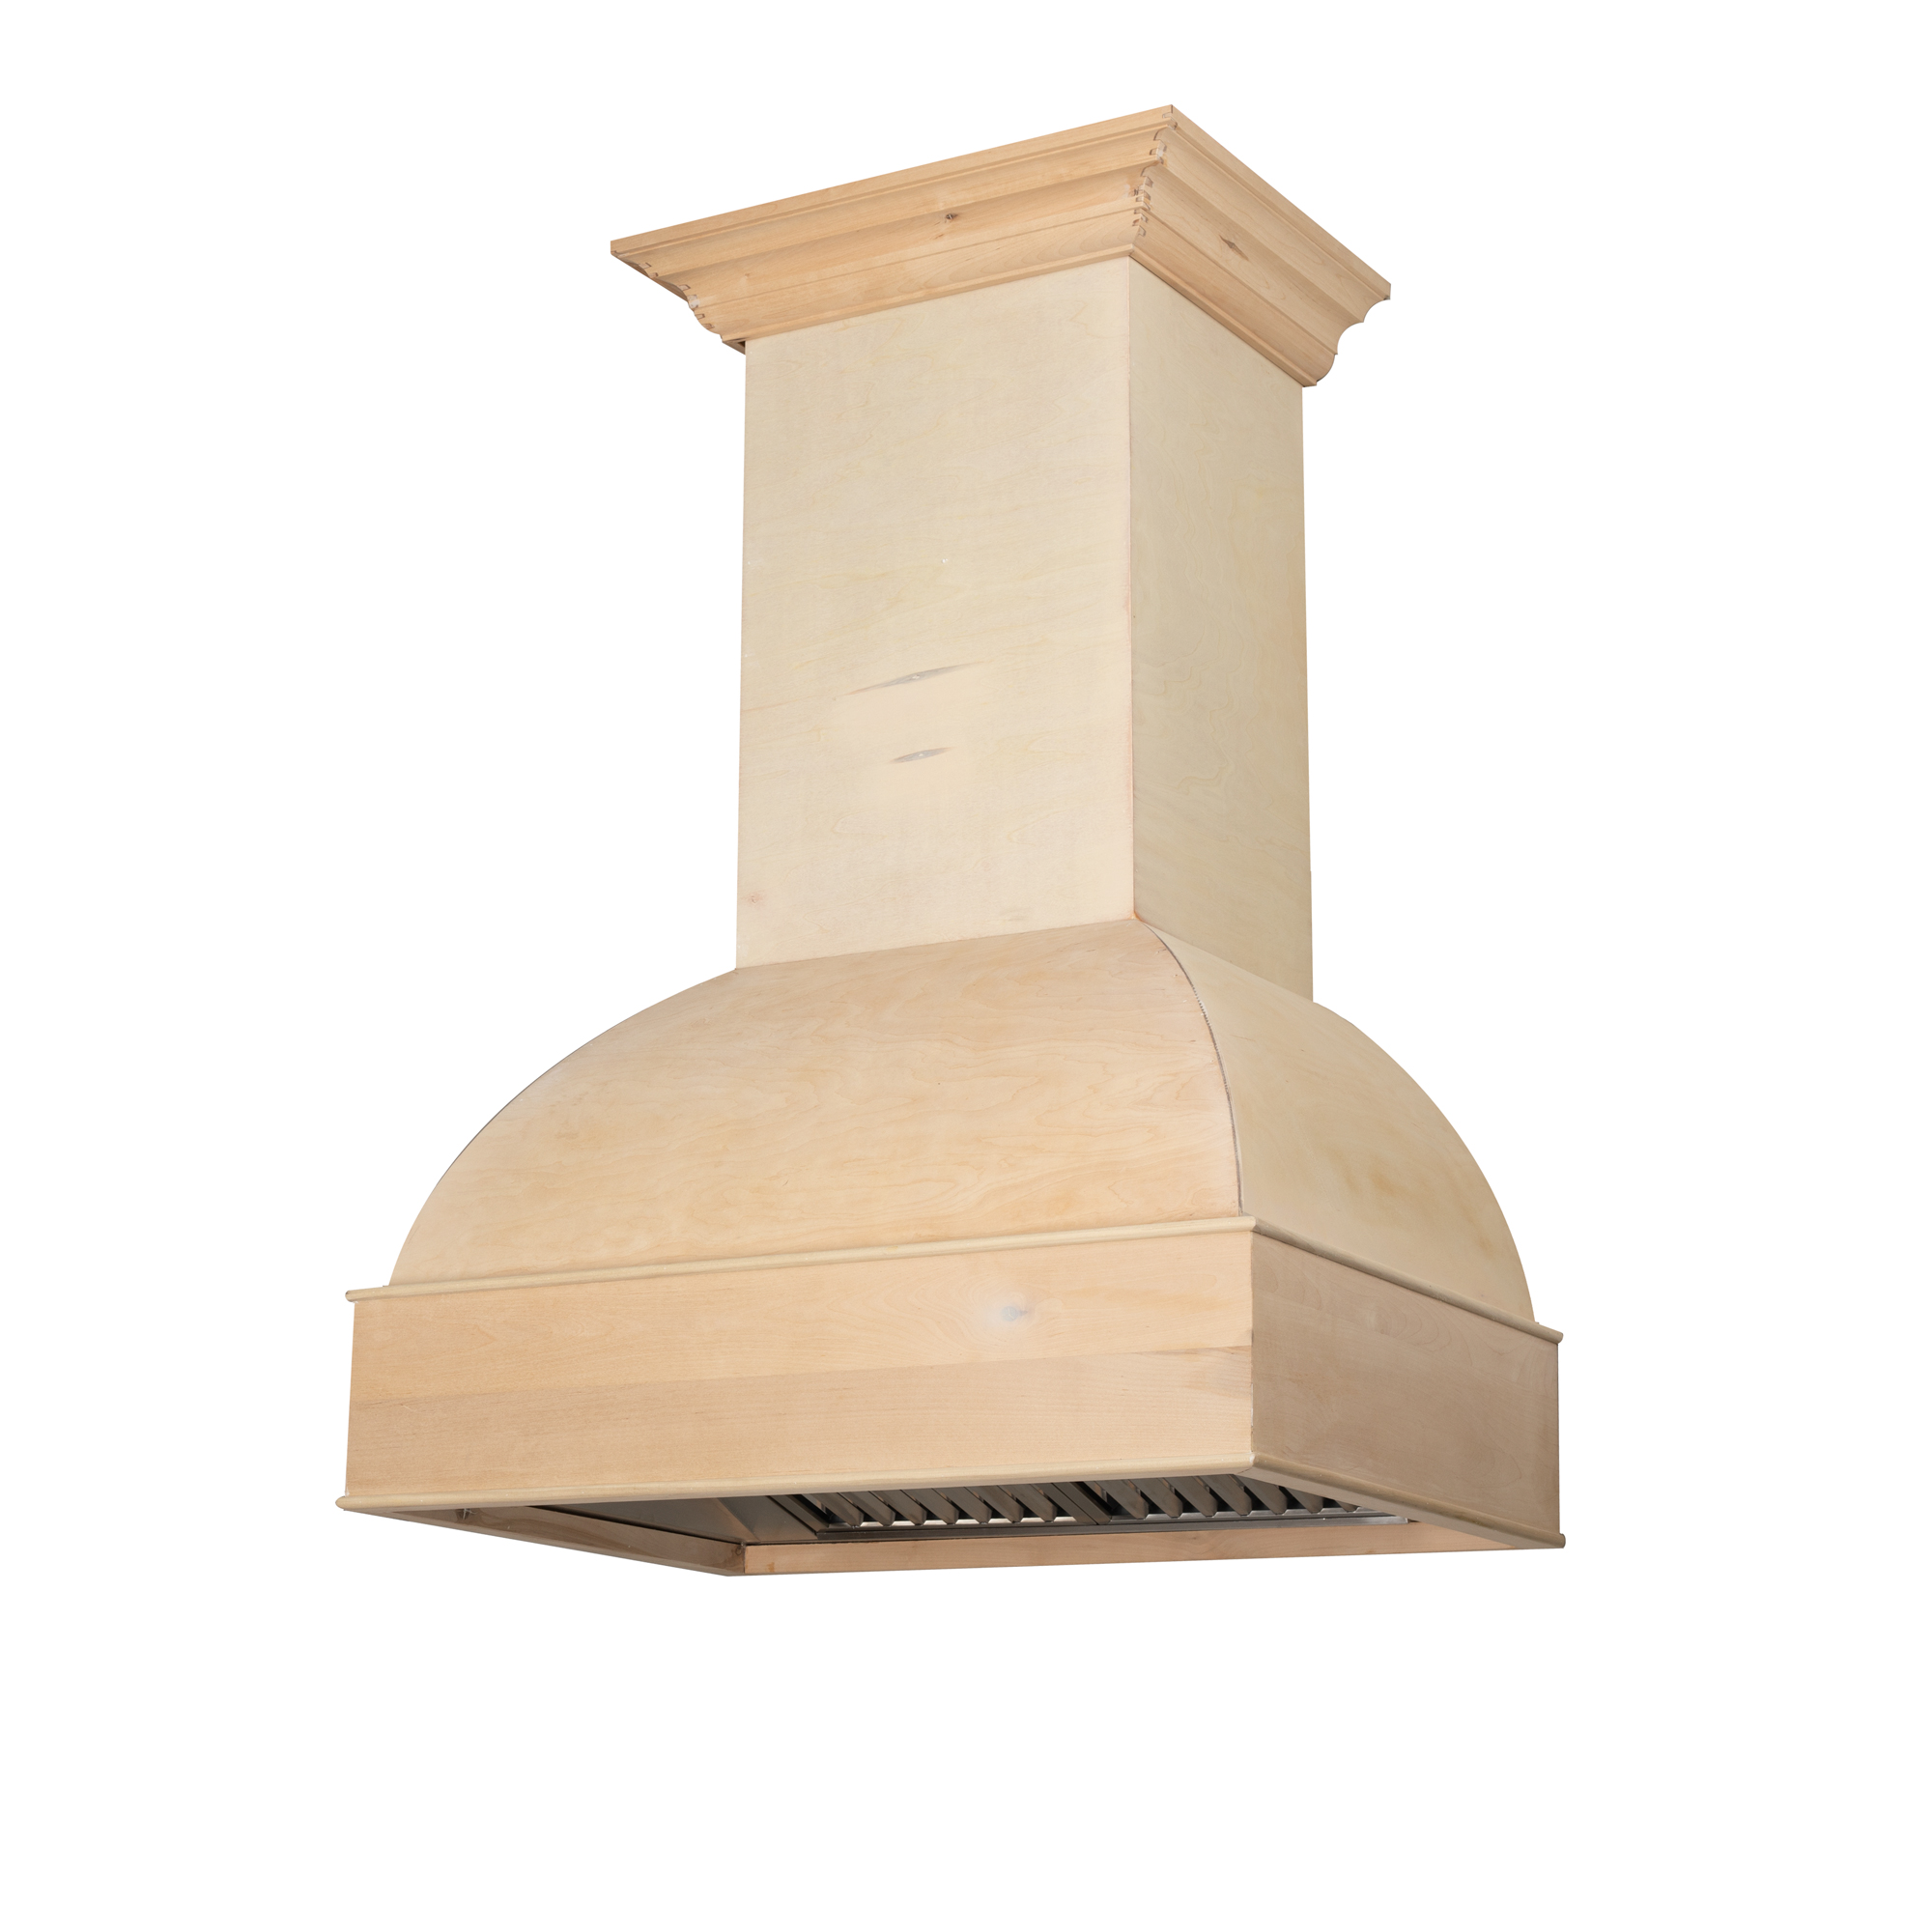 zline-designer-wood-range-hood-355WH-kitchen-side-sunder.jpg